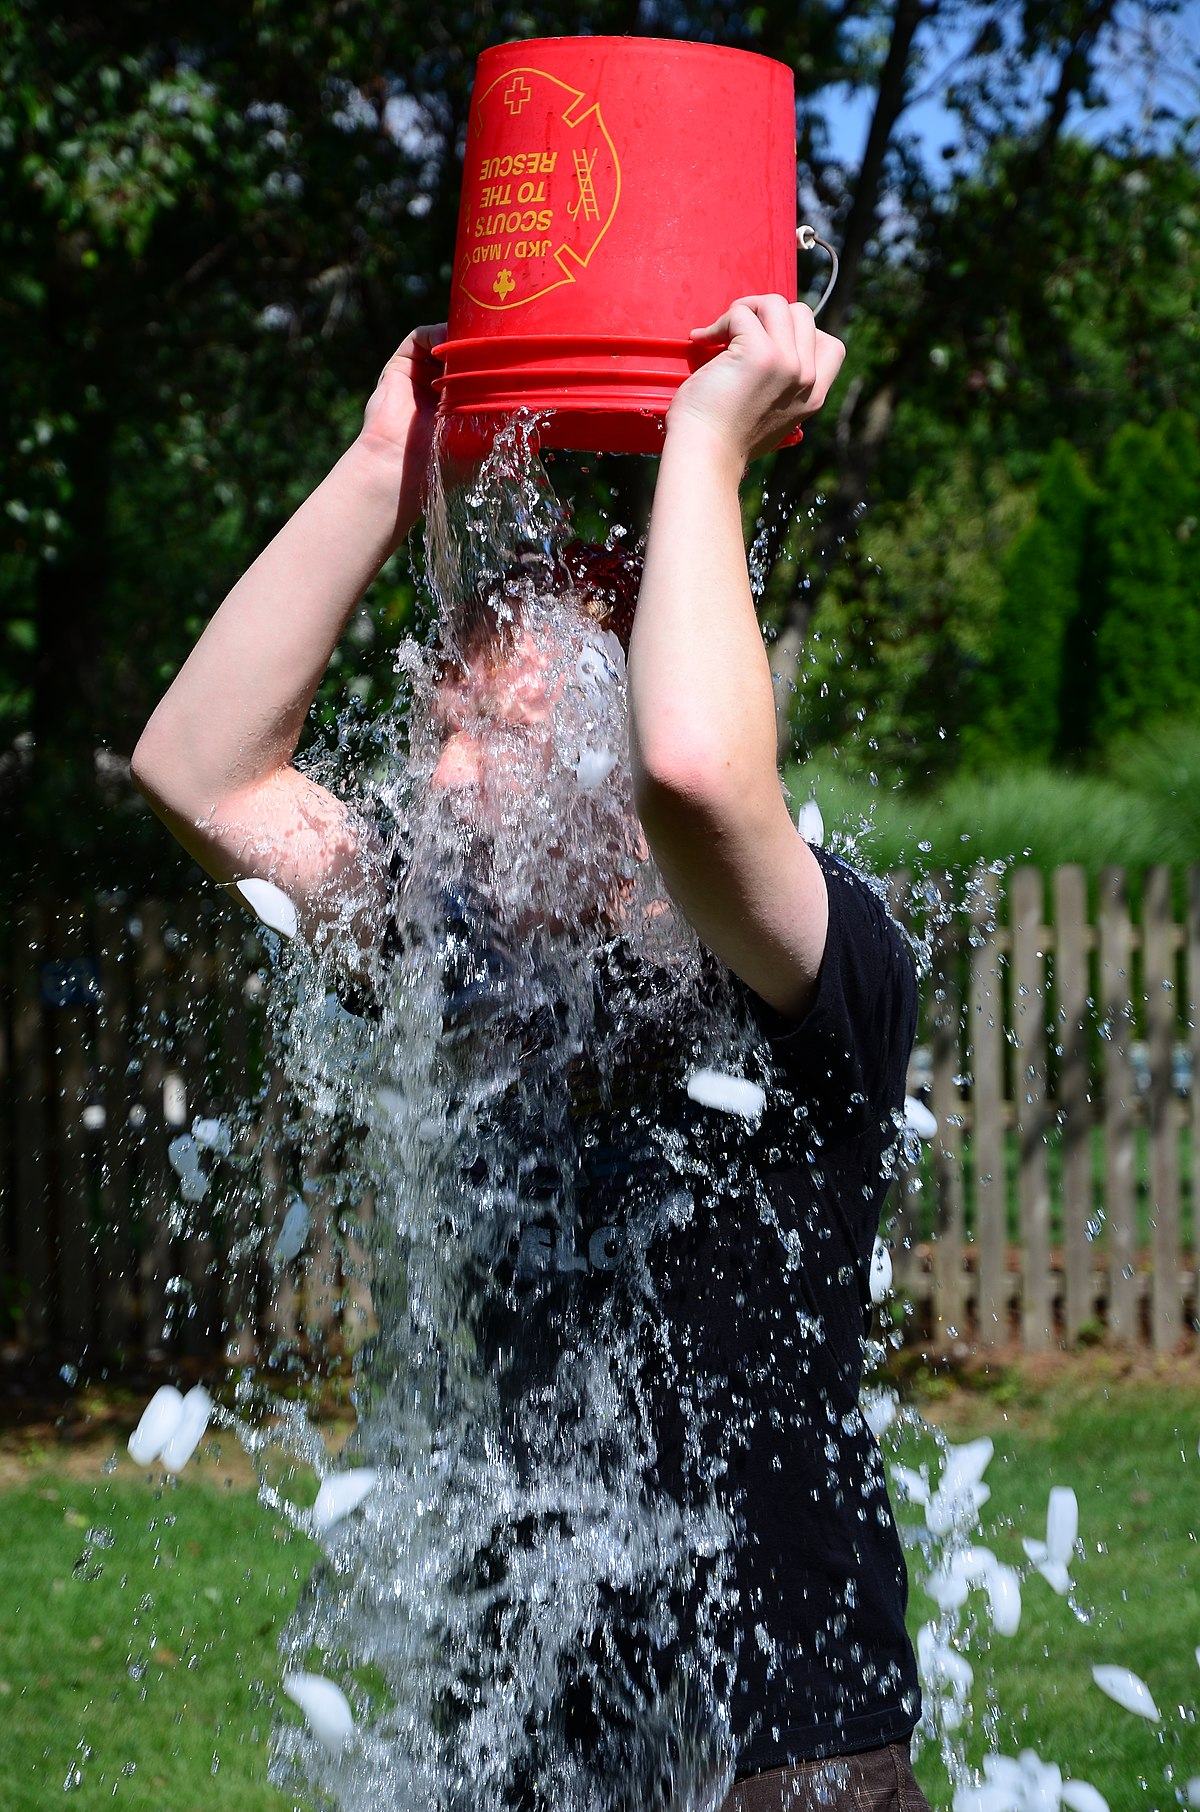 Ice Bucket Challenge - Wikipedia